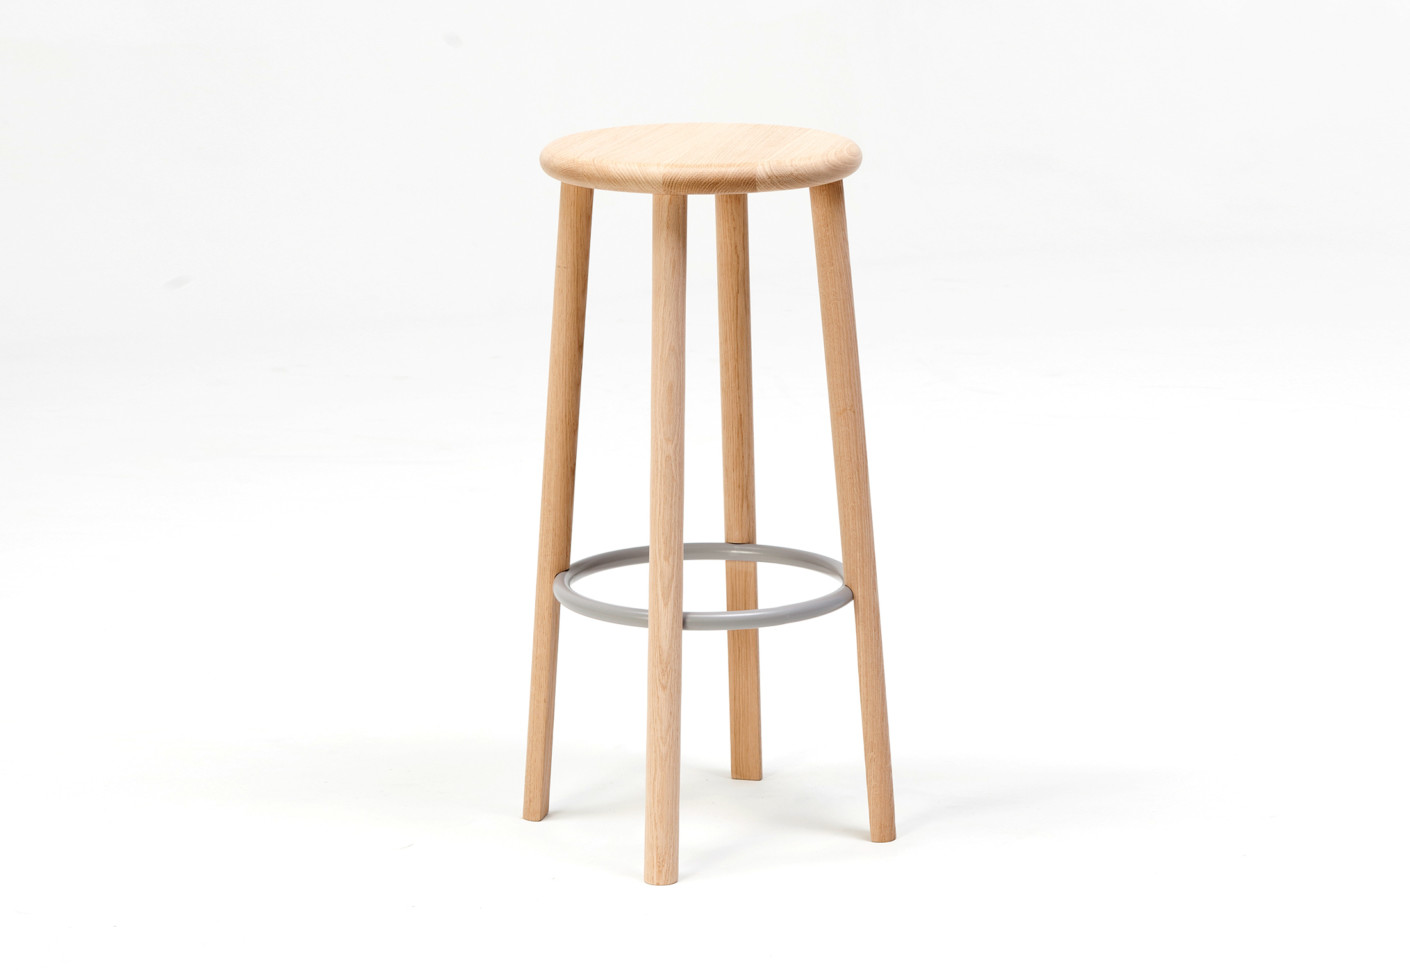 Solo bar stool by Mattiazzi STYLEPARK : solo bar stool 3 from www.stylepark.com size 1410 x 971 jpeg 76kB